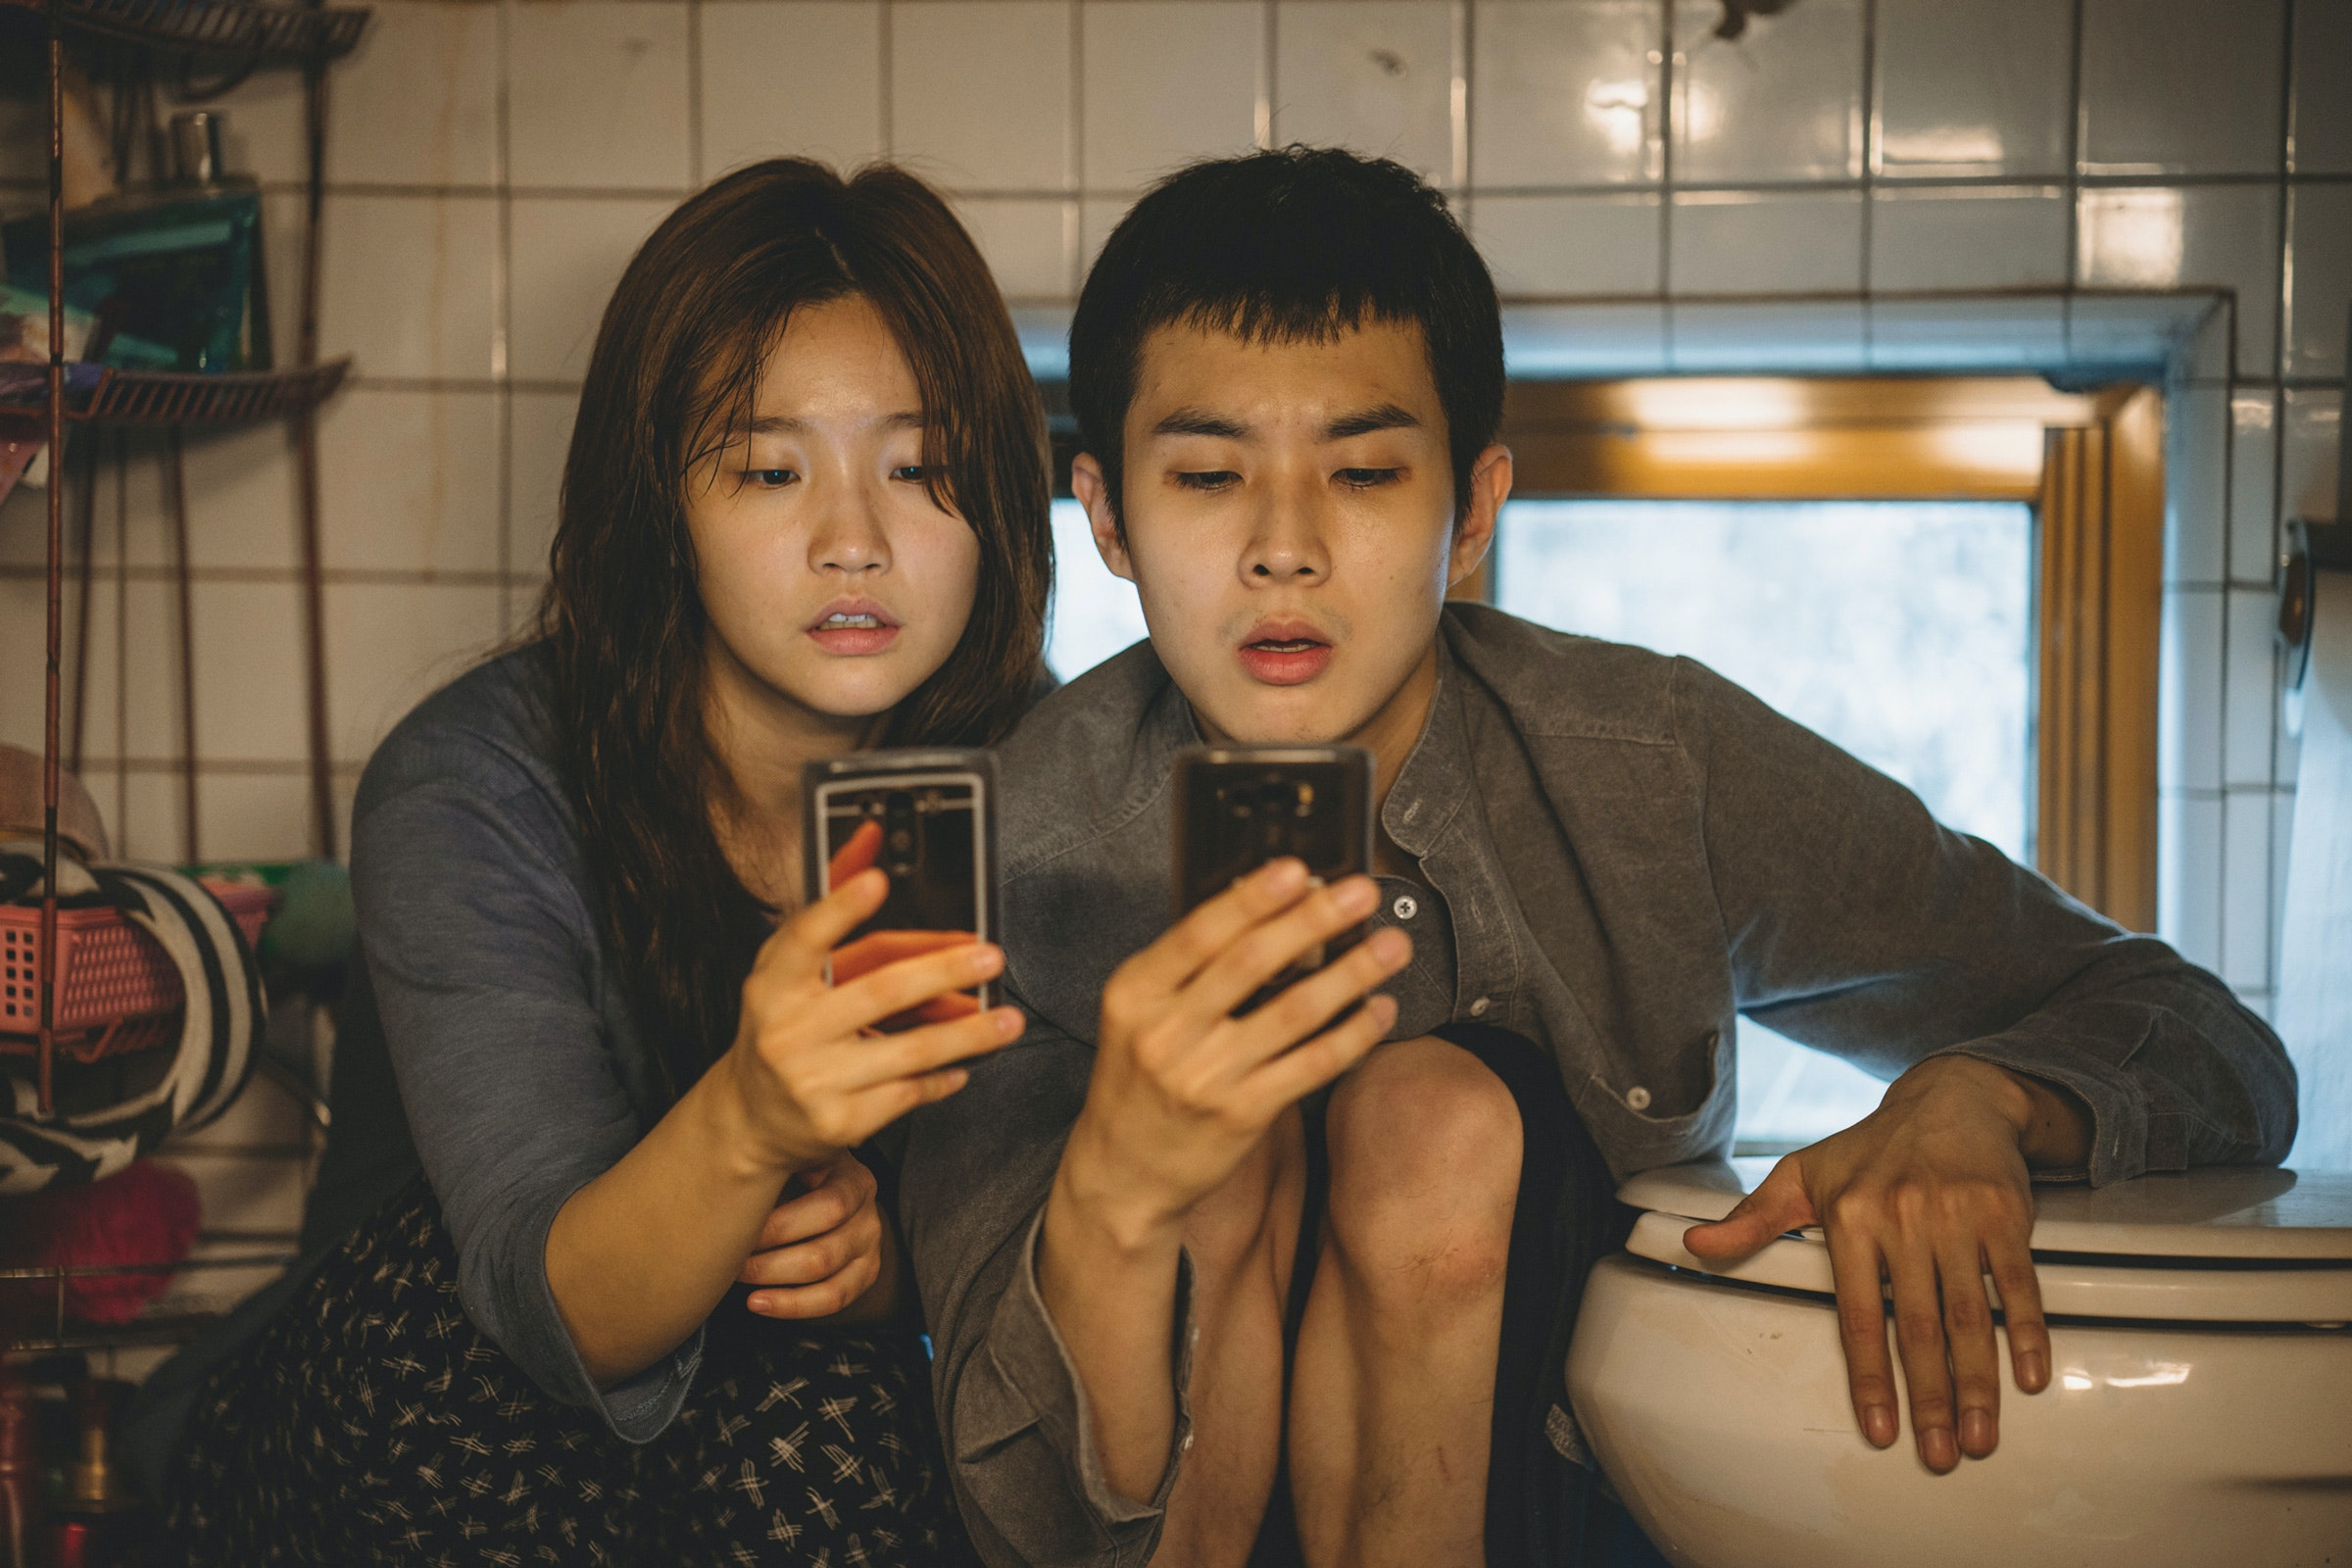 Two young adults in South Korea peering at phones